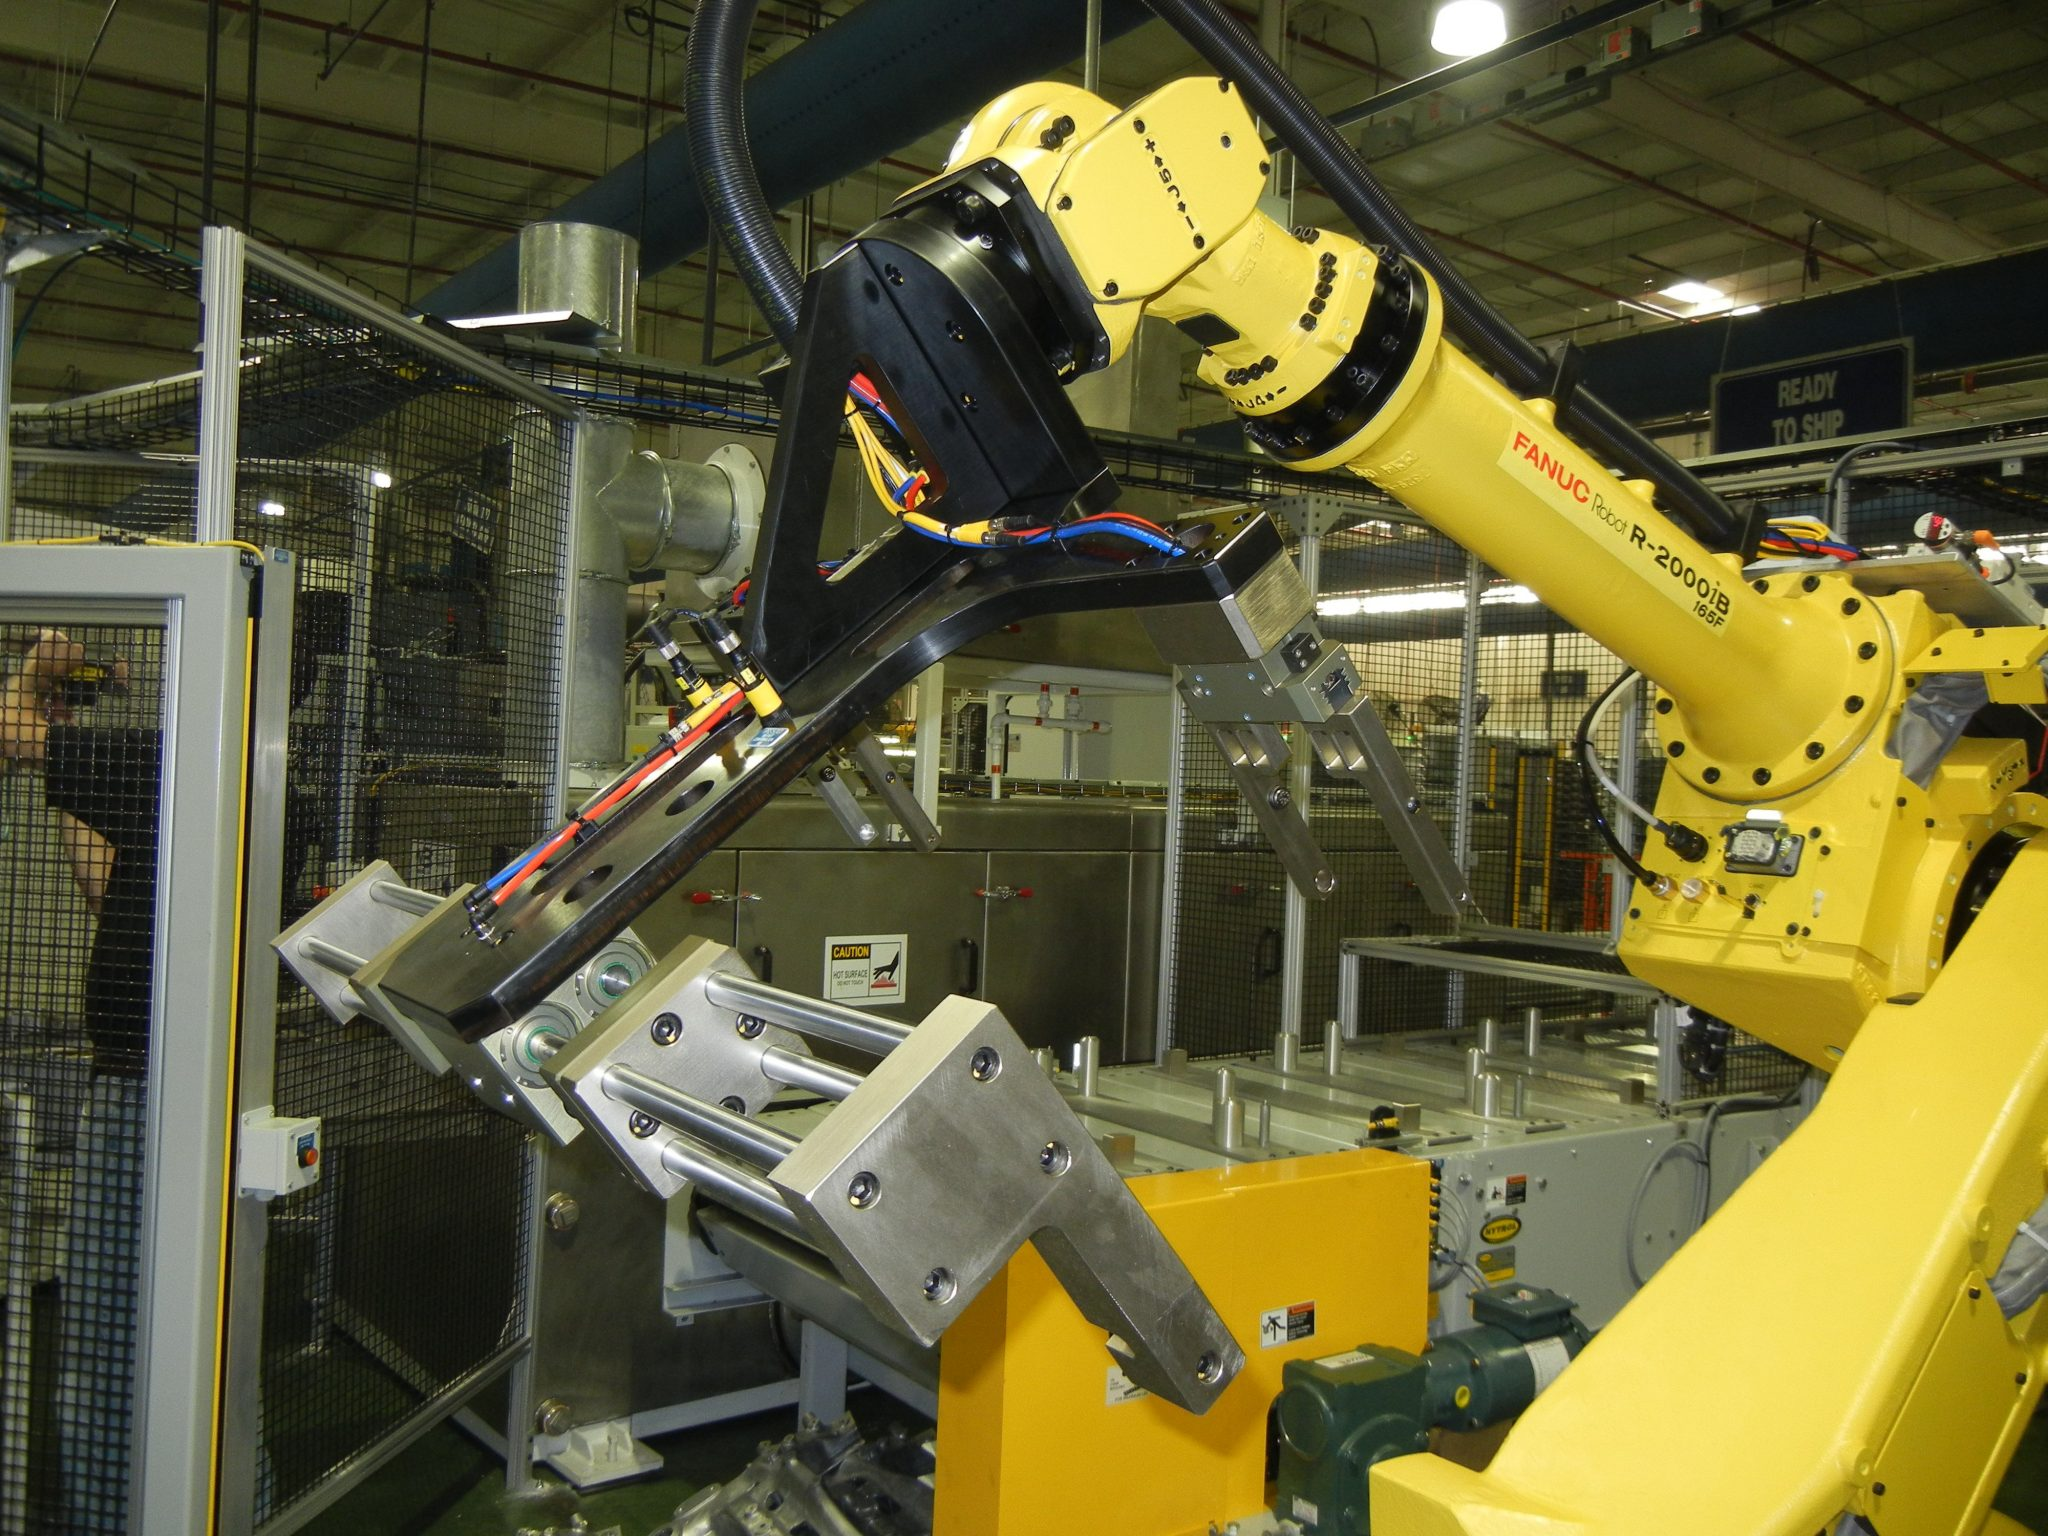 automation and robotics Robotics online is an industrial robot and automation company powered by ria find what type of robots to use in any industry application.